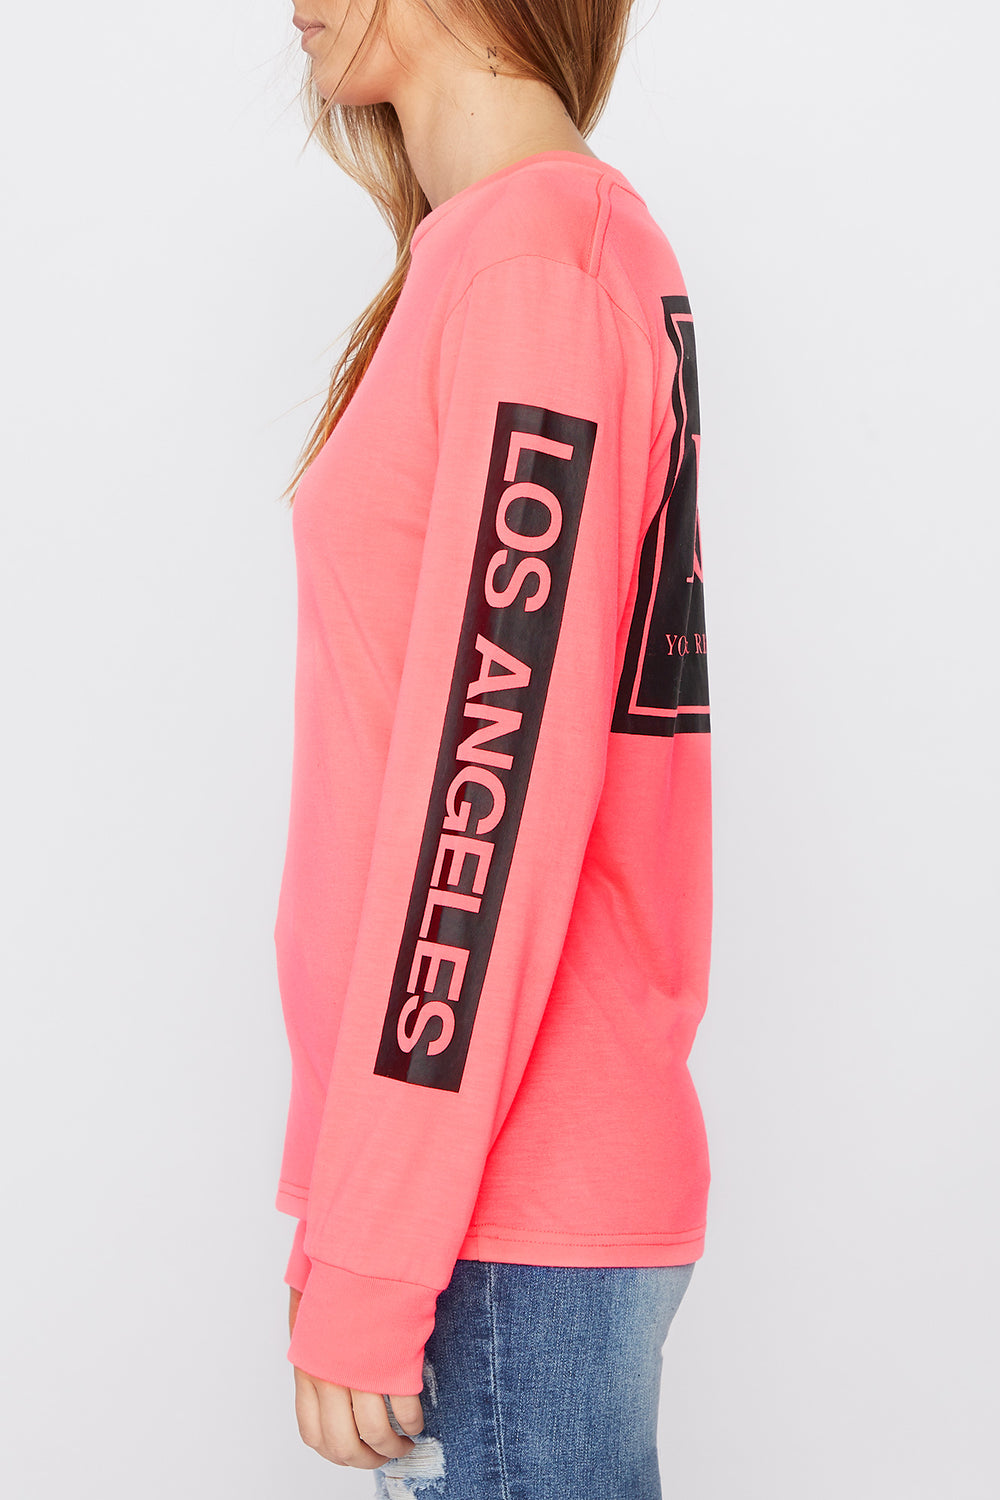 Chandail À Manches Longues Logo Fluo Young & Reckless Femme Magenta